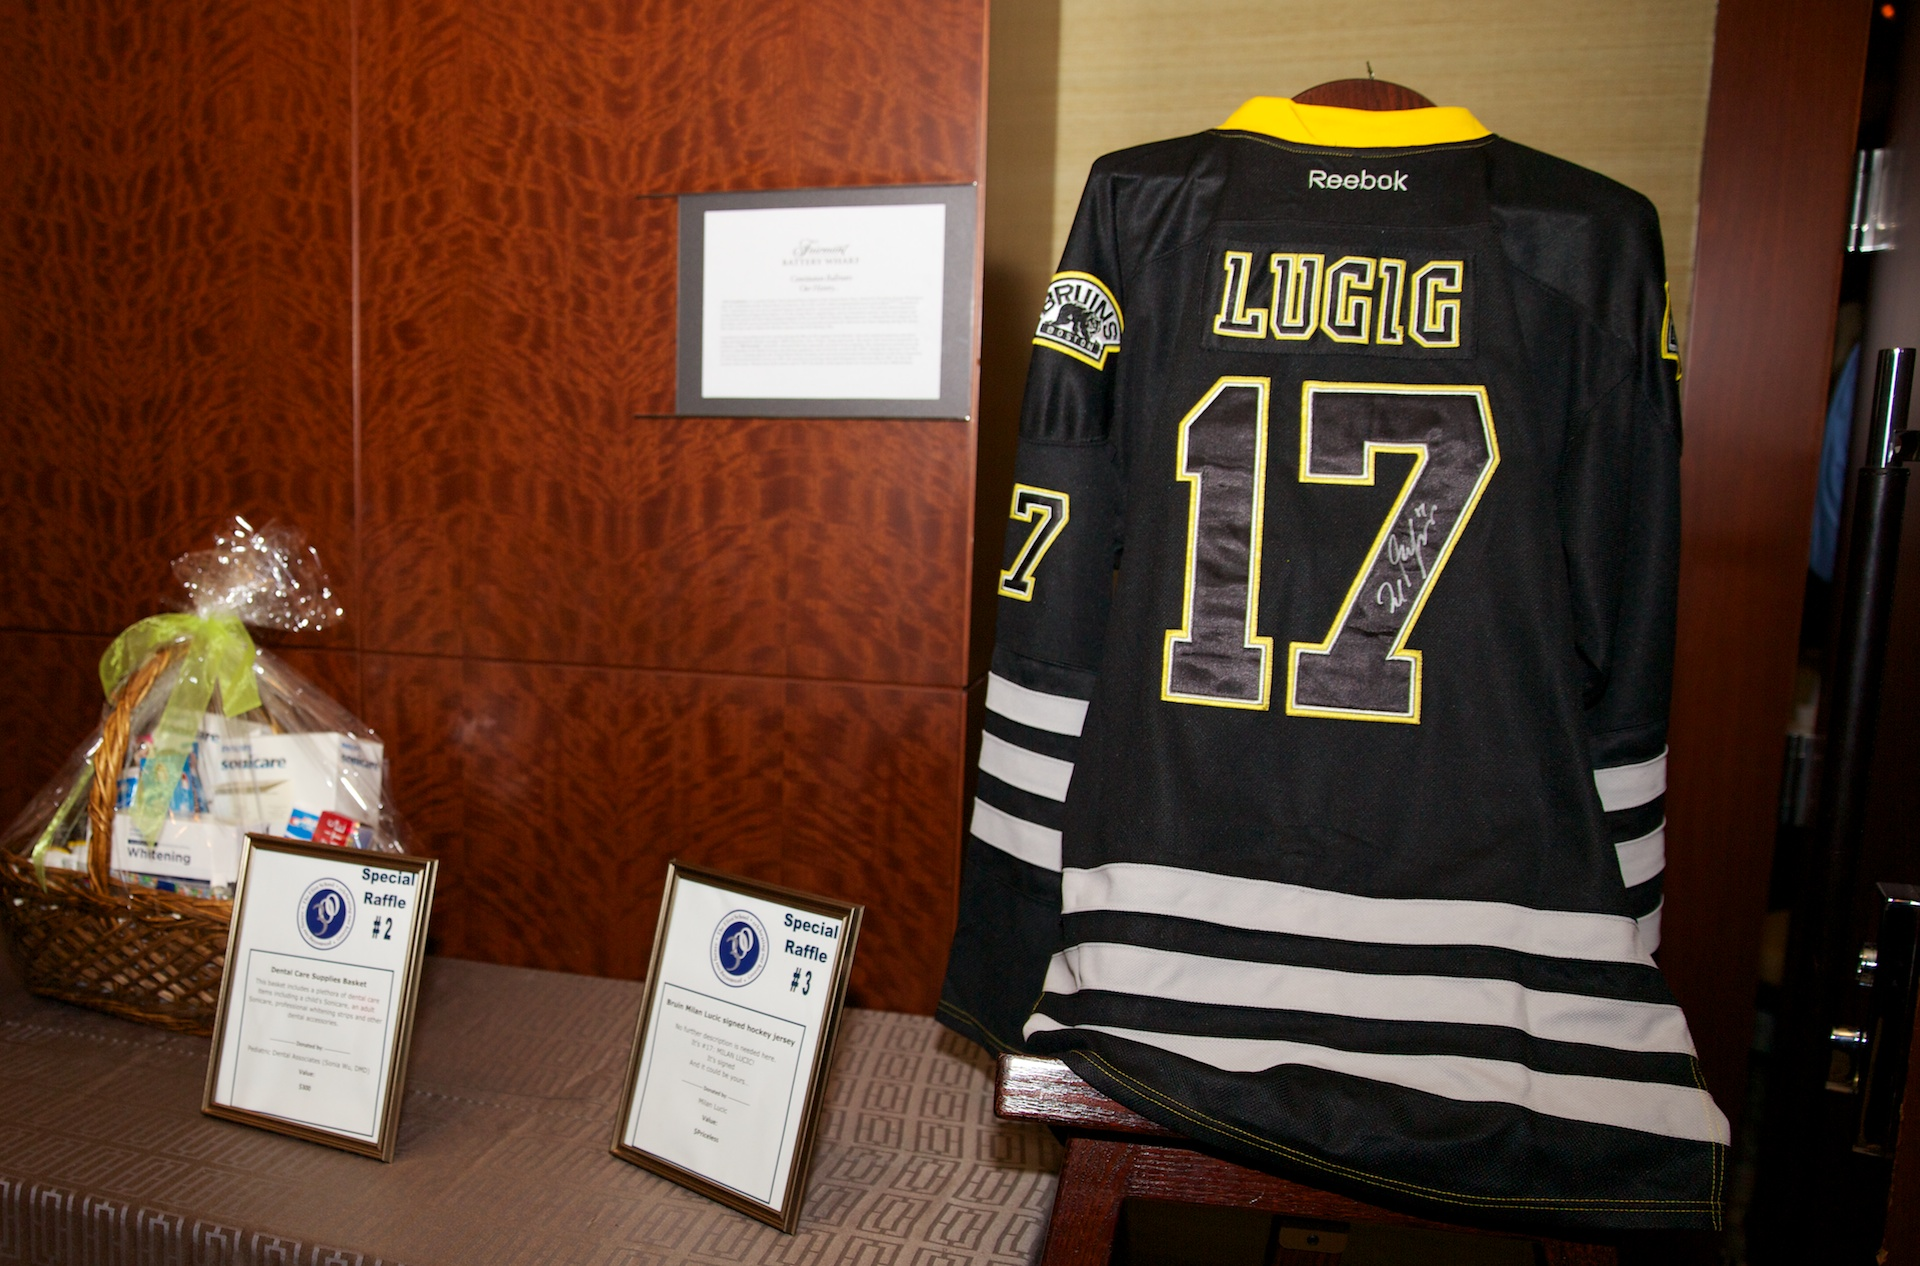 new arrival b8a1f 3adc1 Special Raffle Prizes included a signed jersey from Boston ...